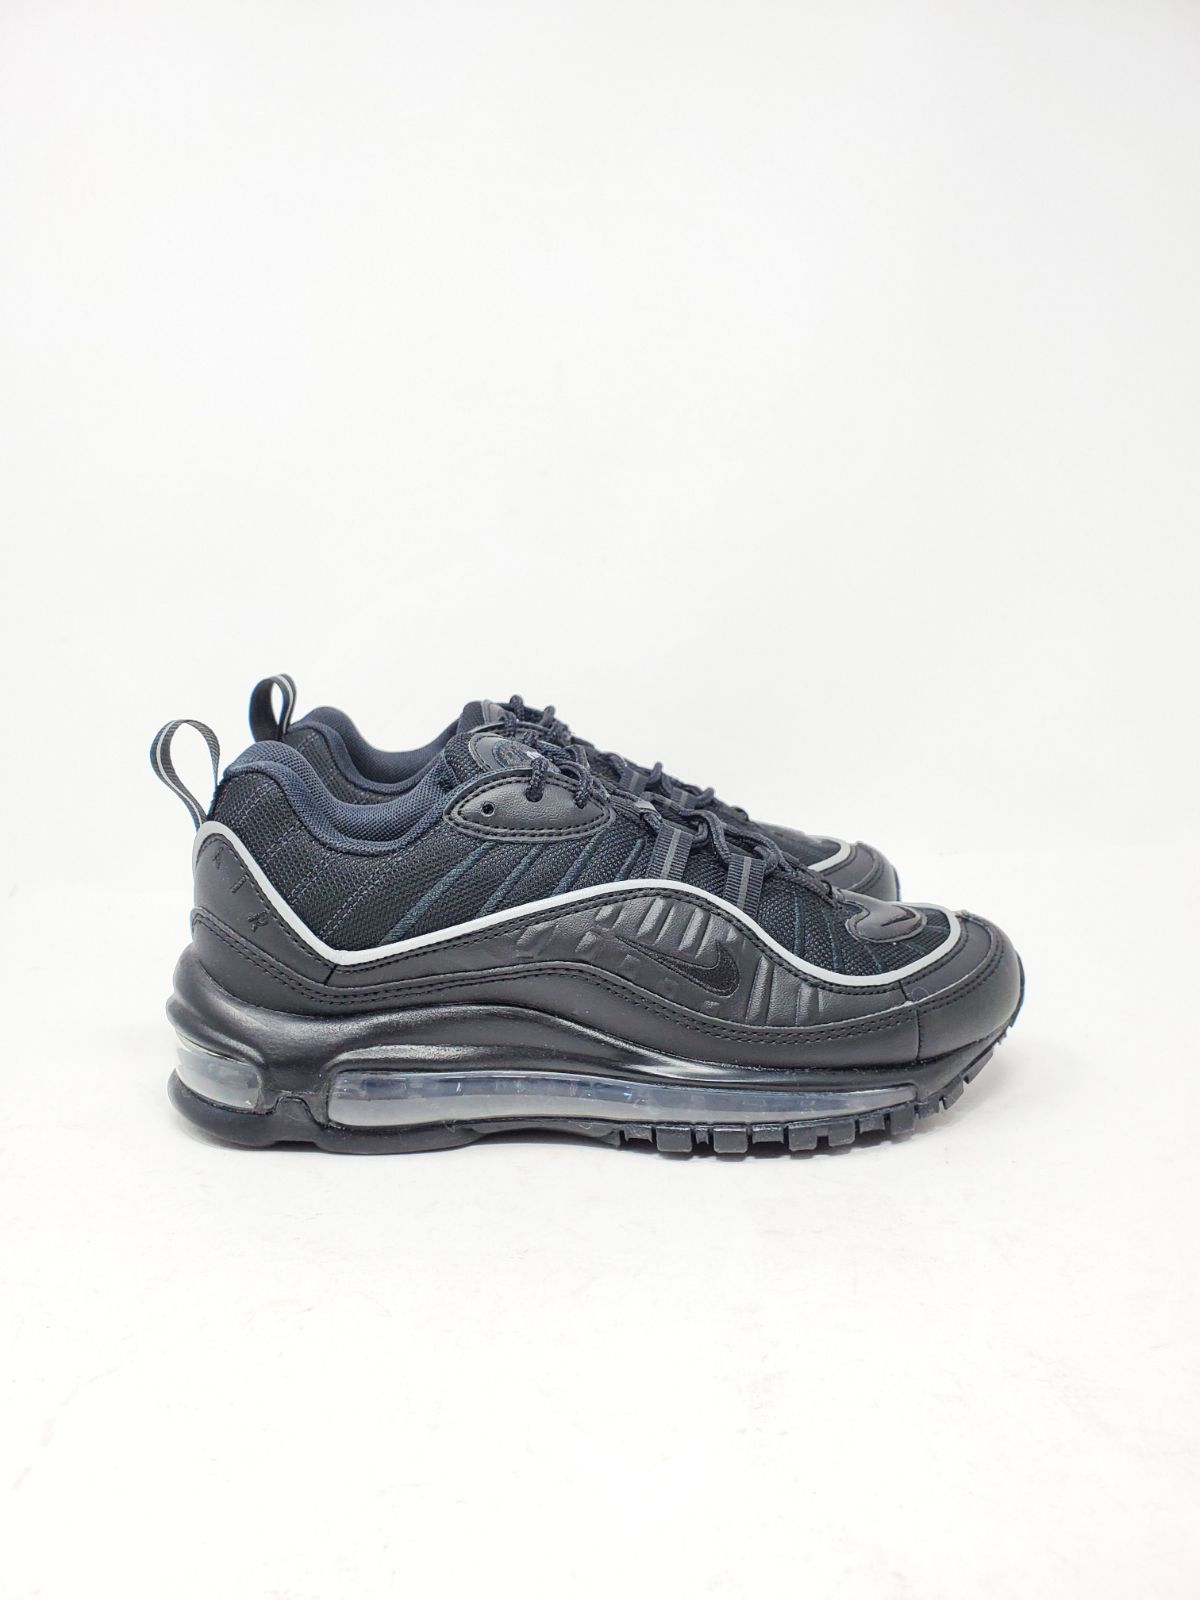 NEW NIKE AIR MAX 98 triple black